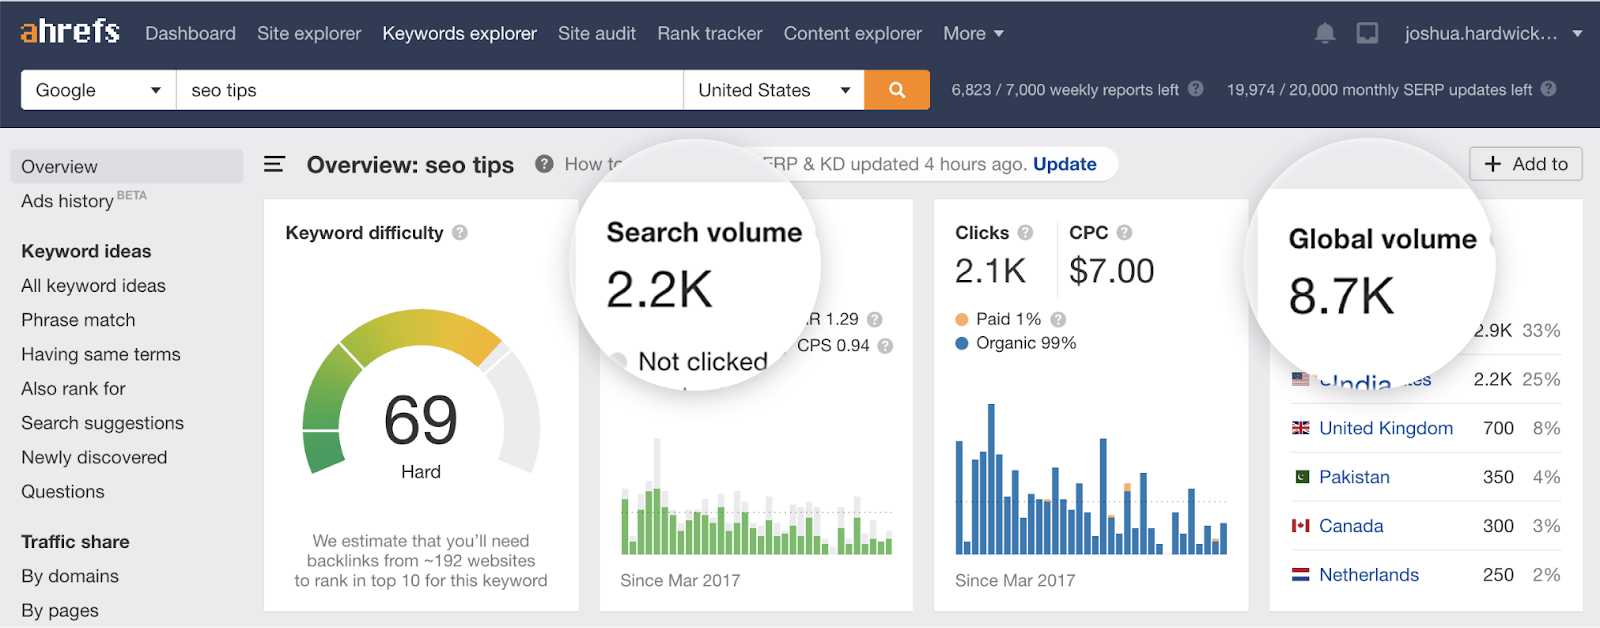 12 seo tips search volume